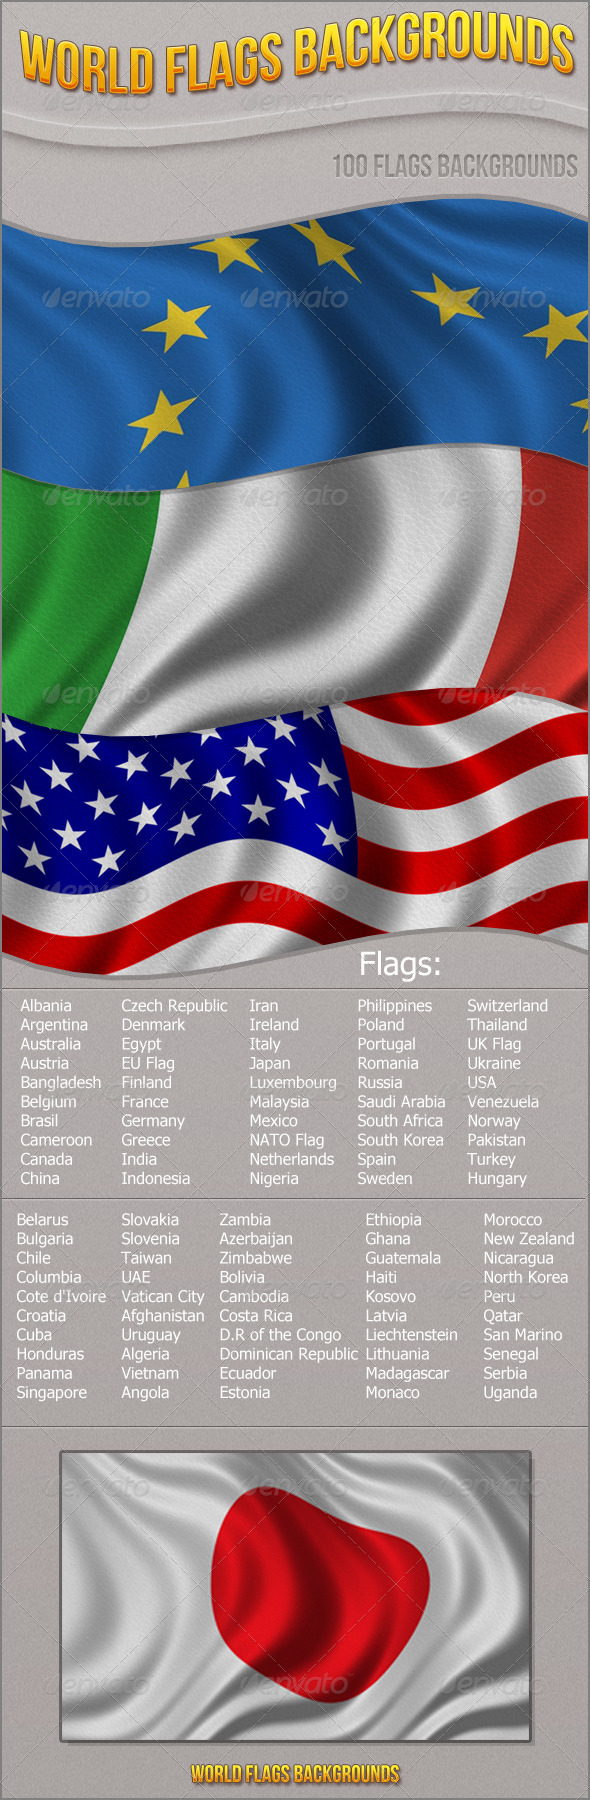 World Flags Backgrounds - Backgrounds Graphics